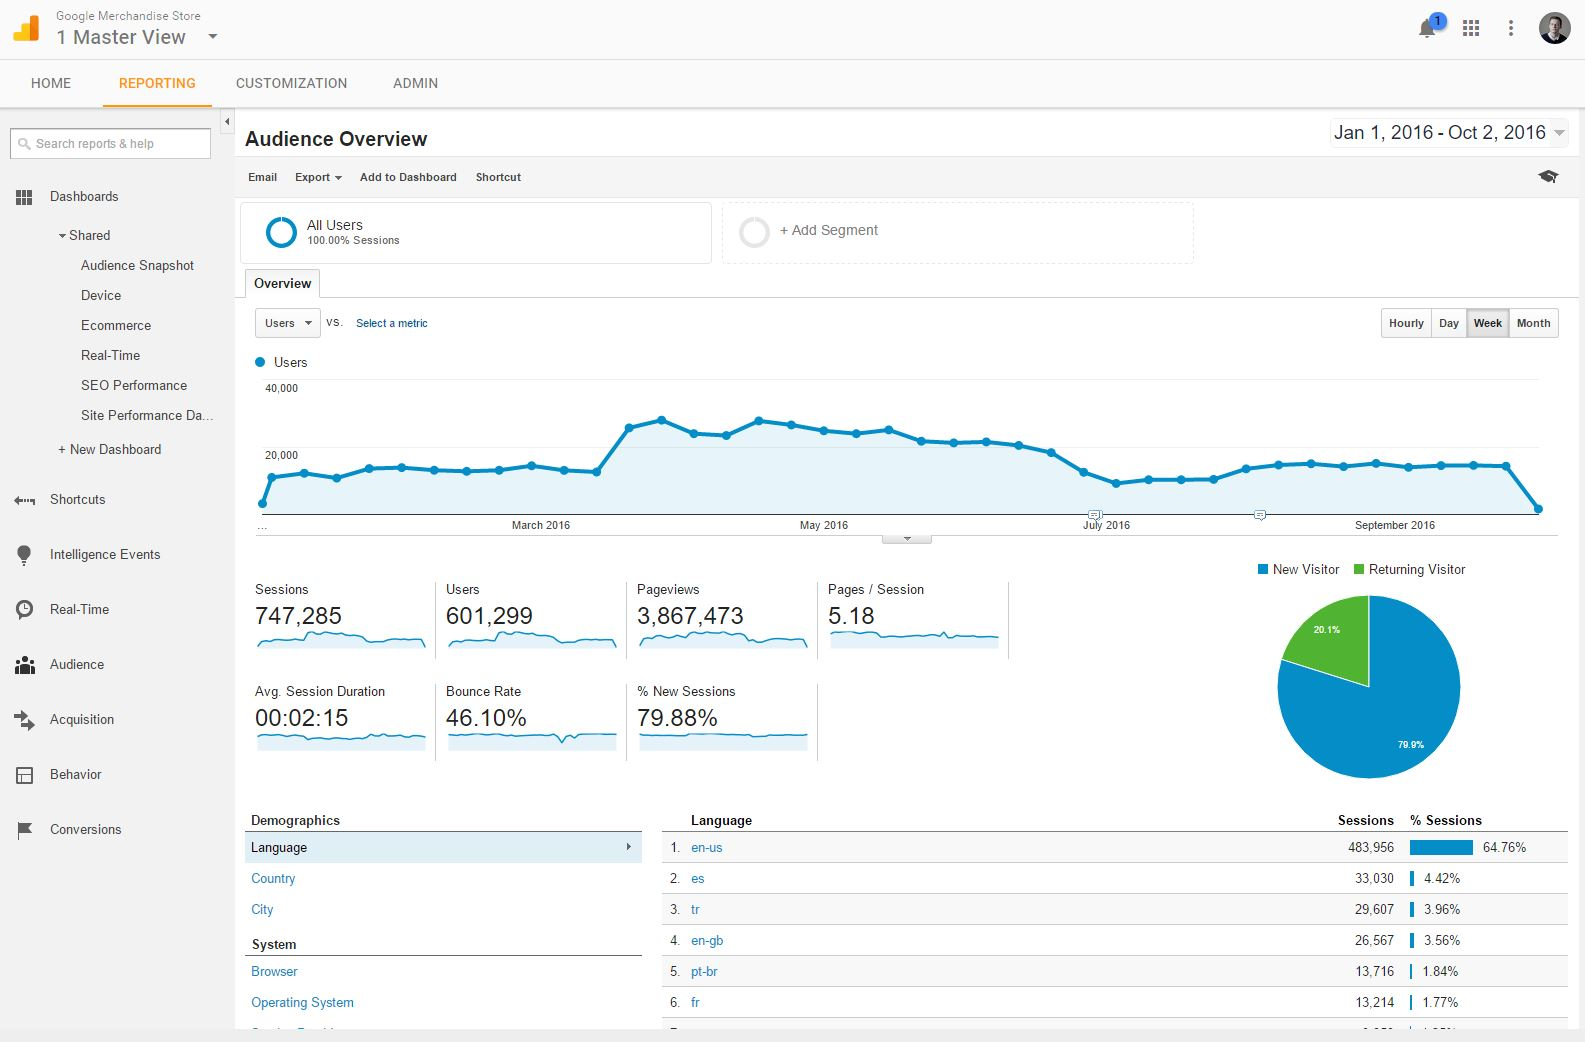 Google Analytics Screengrab.JPG